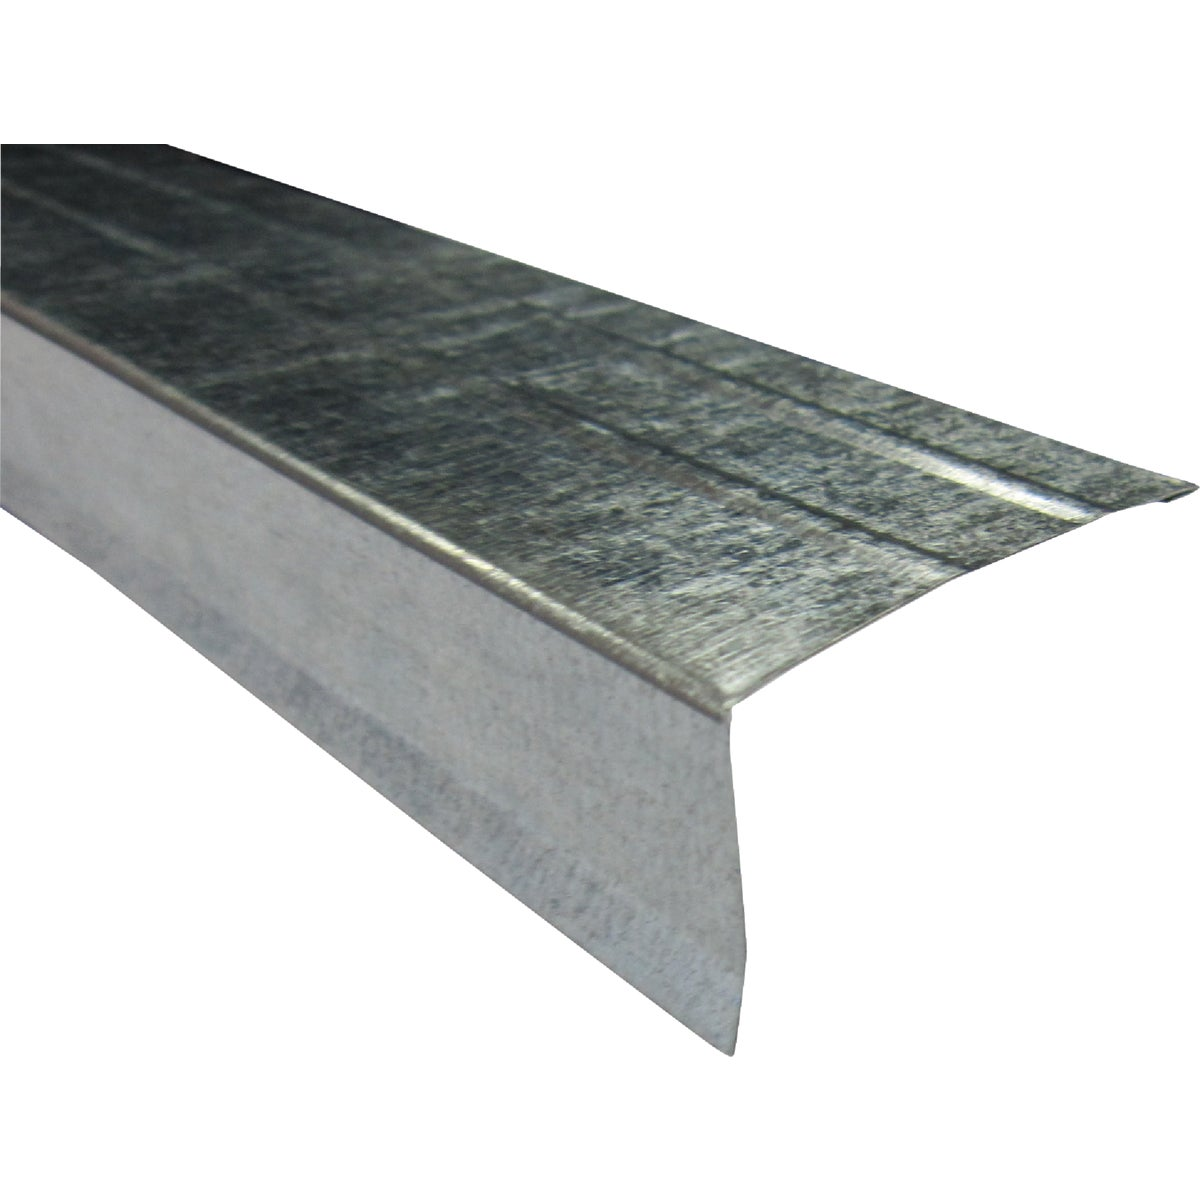 "3""X10' STYLE H ROOF EDGE - 32811-GV10 by Klauer Mfg Co"